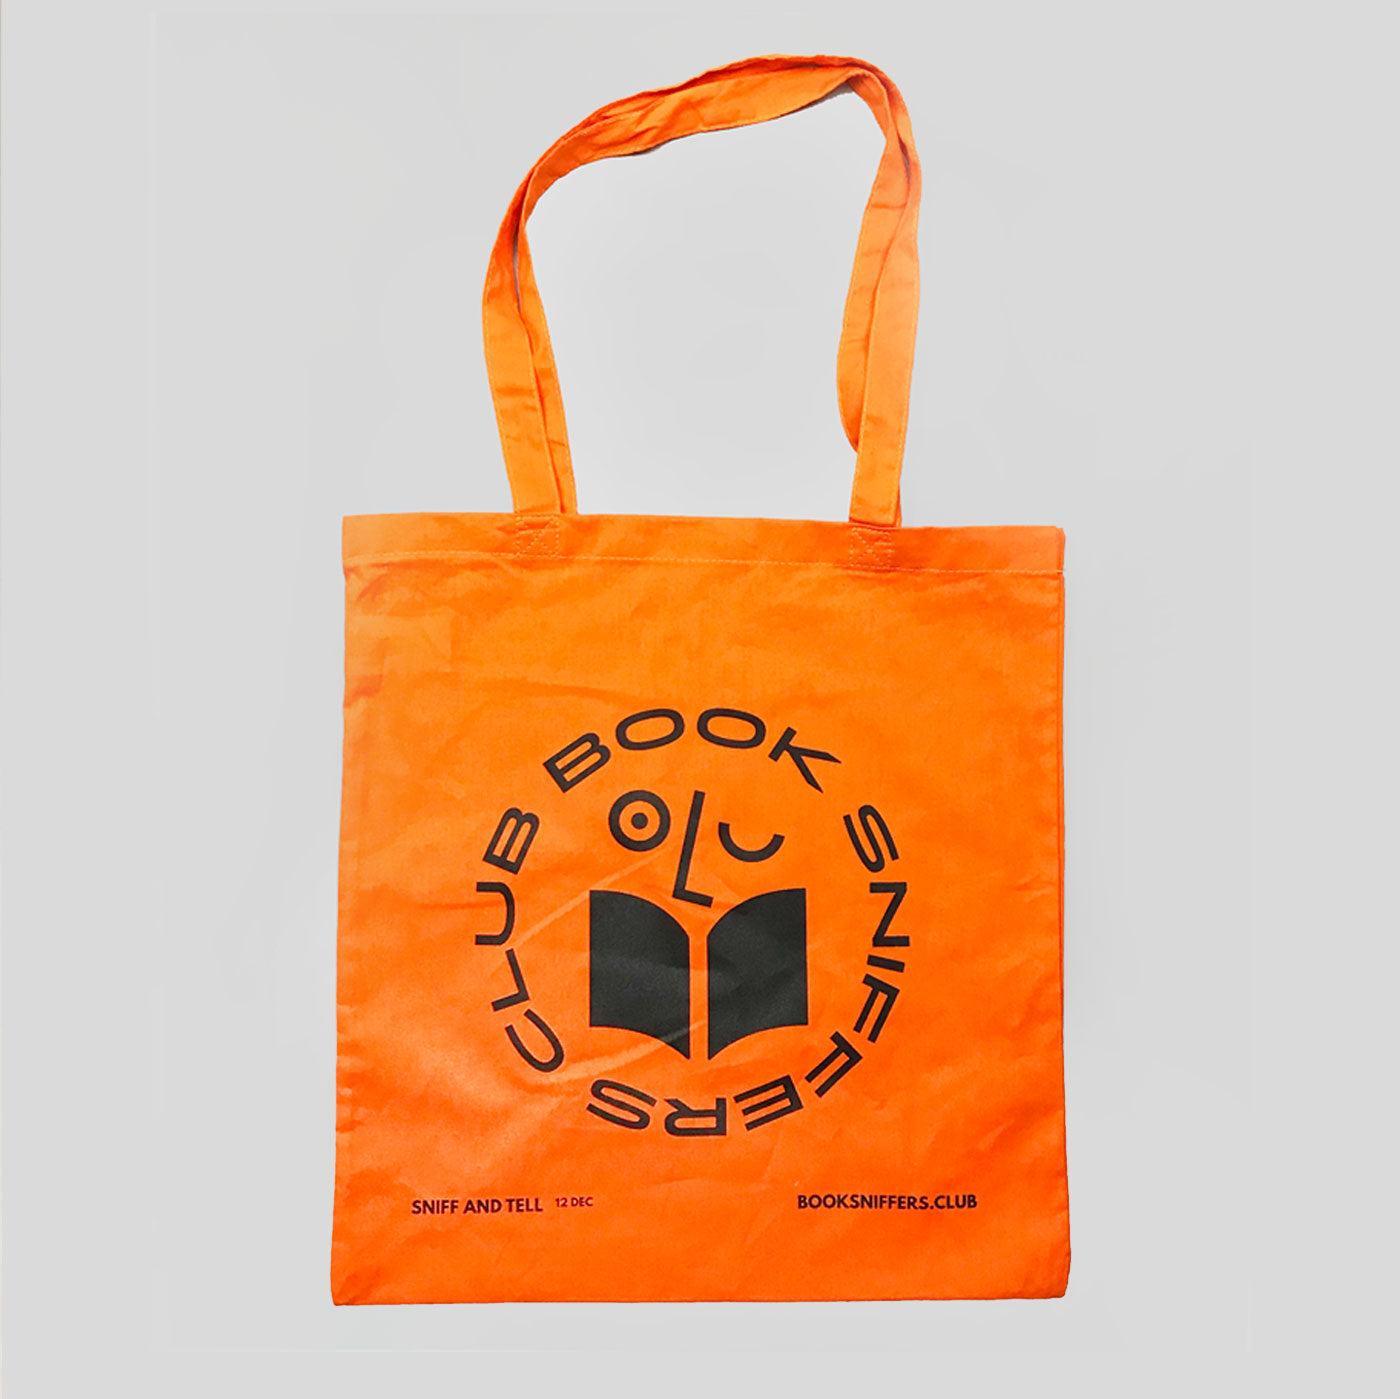 Book Sniffers Club Tote